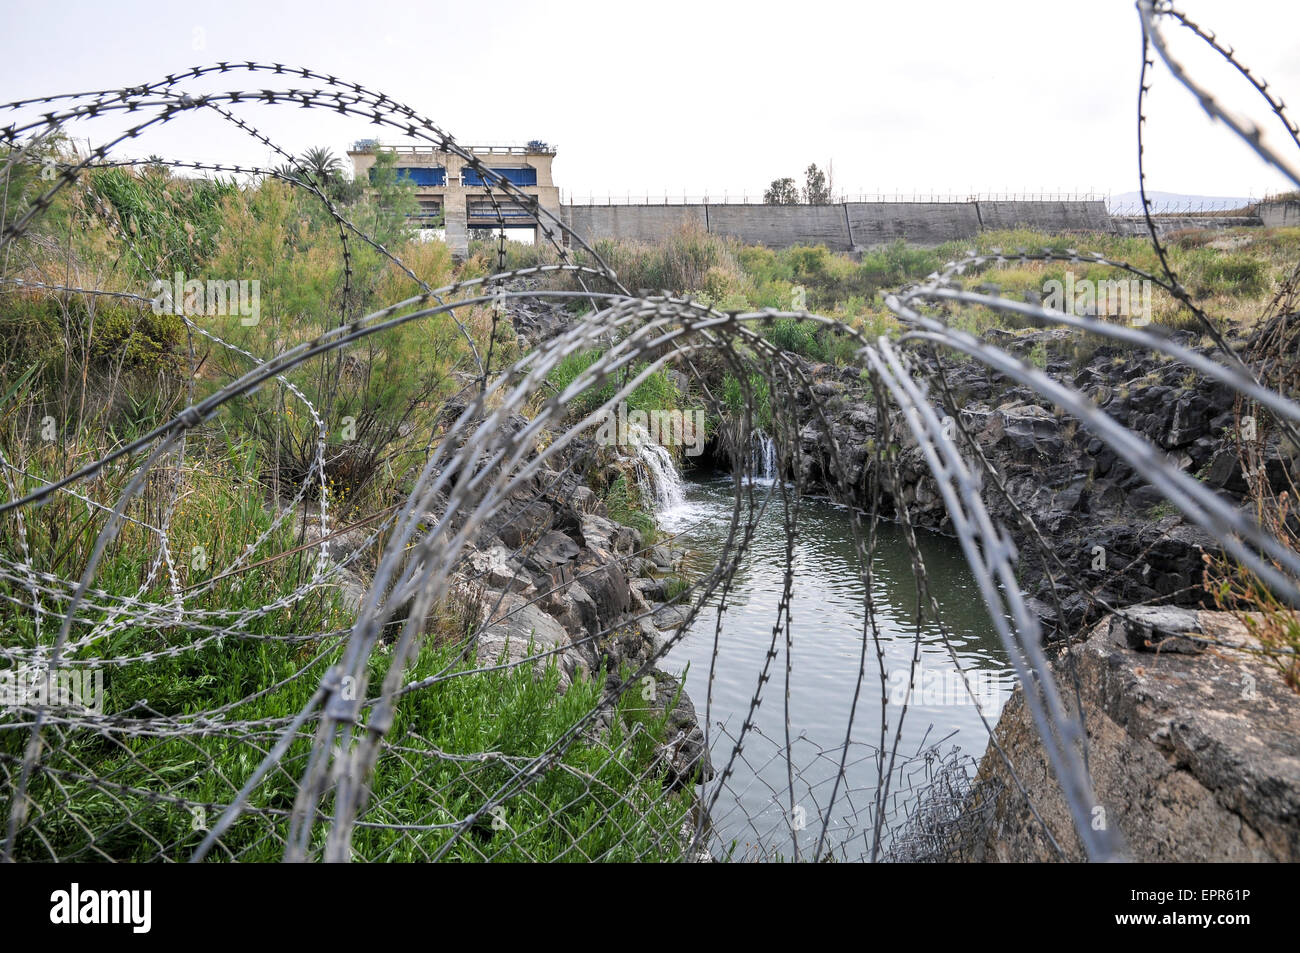 The Israeli Jordanian Border Photographed at Naharaim on the Jordan River barbed wire security fence - Stock Image